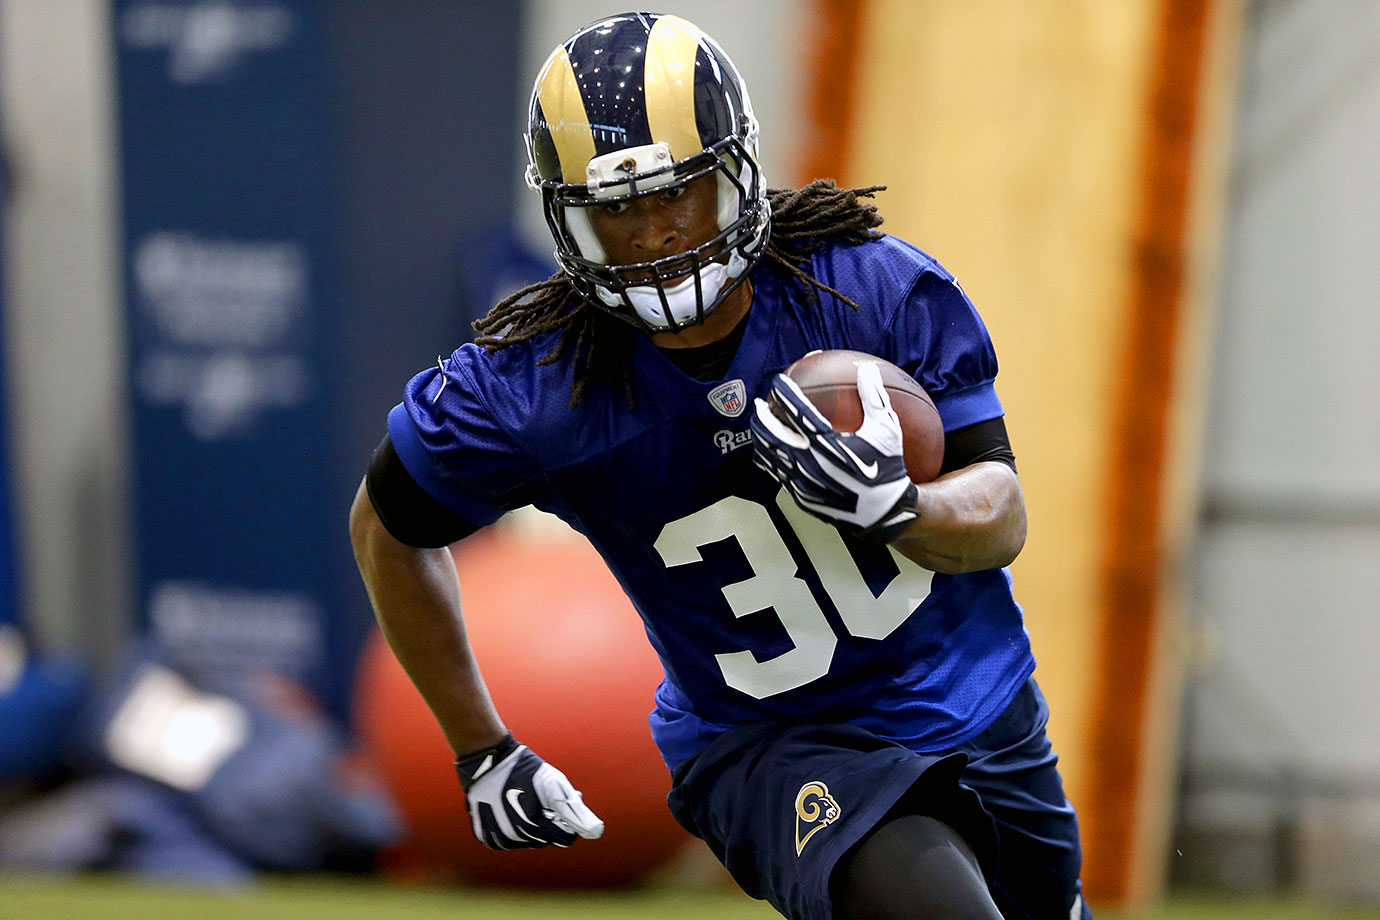 Gurley didn't tear his ACL until mid-November, meaning he'll be just 10 months removed from the injury when the Rams take on the Seahawks in their season opener. On top of that, Tre Mason played well once the Rams finally gave him a chance in his rookie season, running for 765 yards and four touchdowns on 179 carries. The Rams have no reason to rush Gurley back, or ride him too hard once he is on the field. He may be a star in the future, but don't expect it to come together this year.